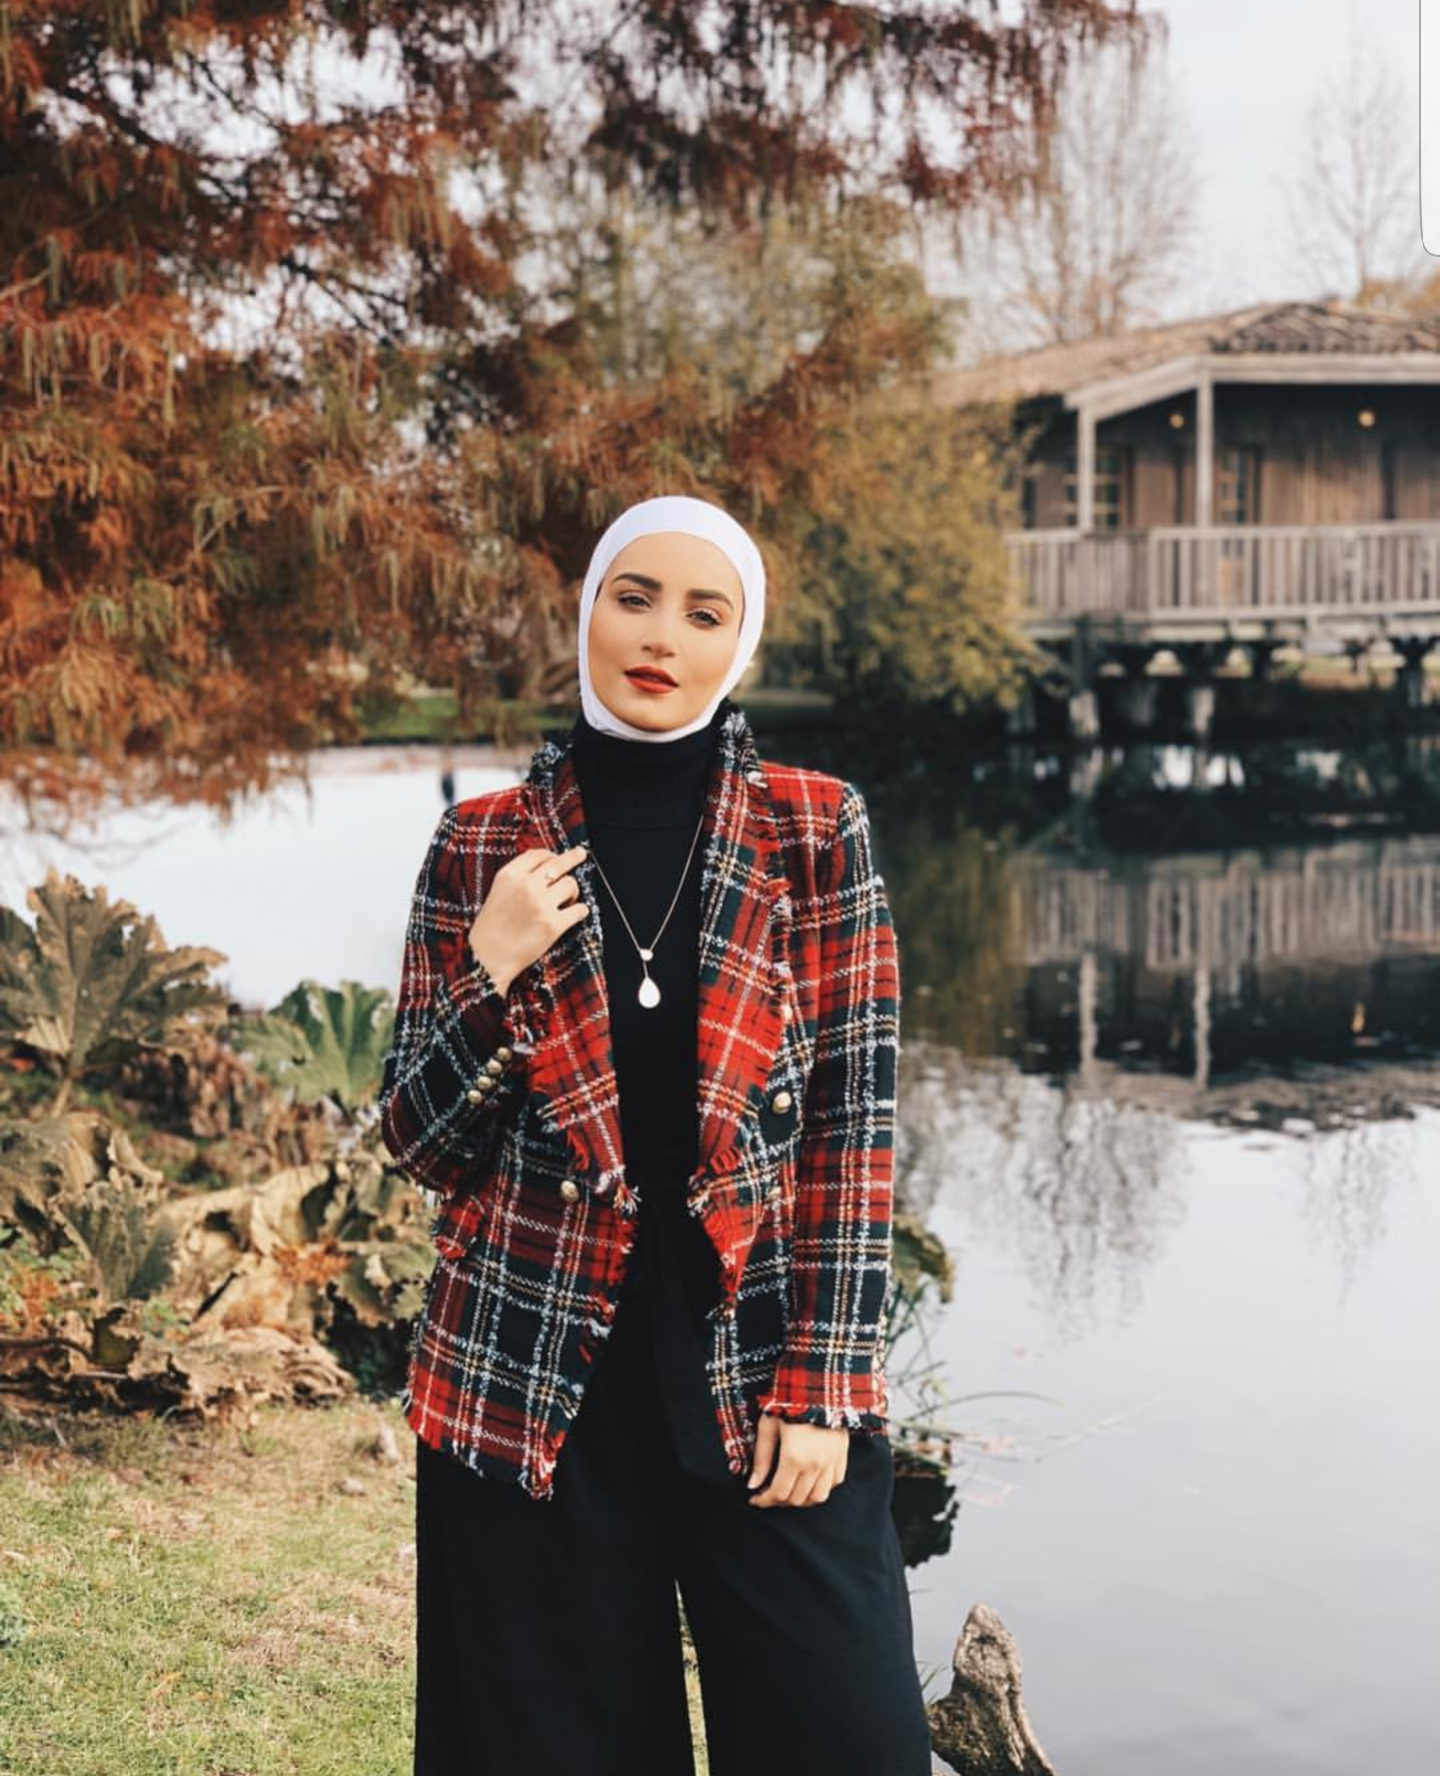 6 Stylish Ways To Wear Check Prints With Hijab